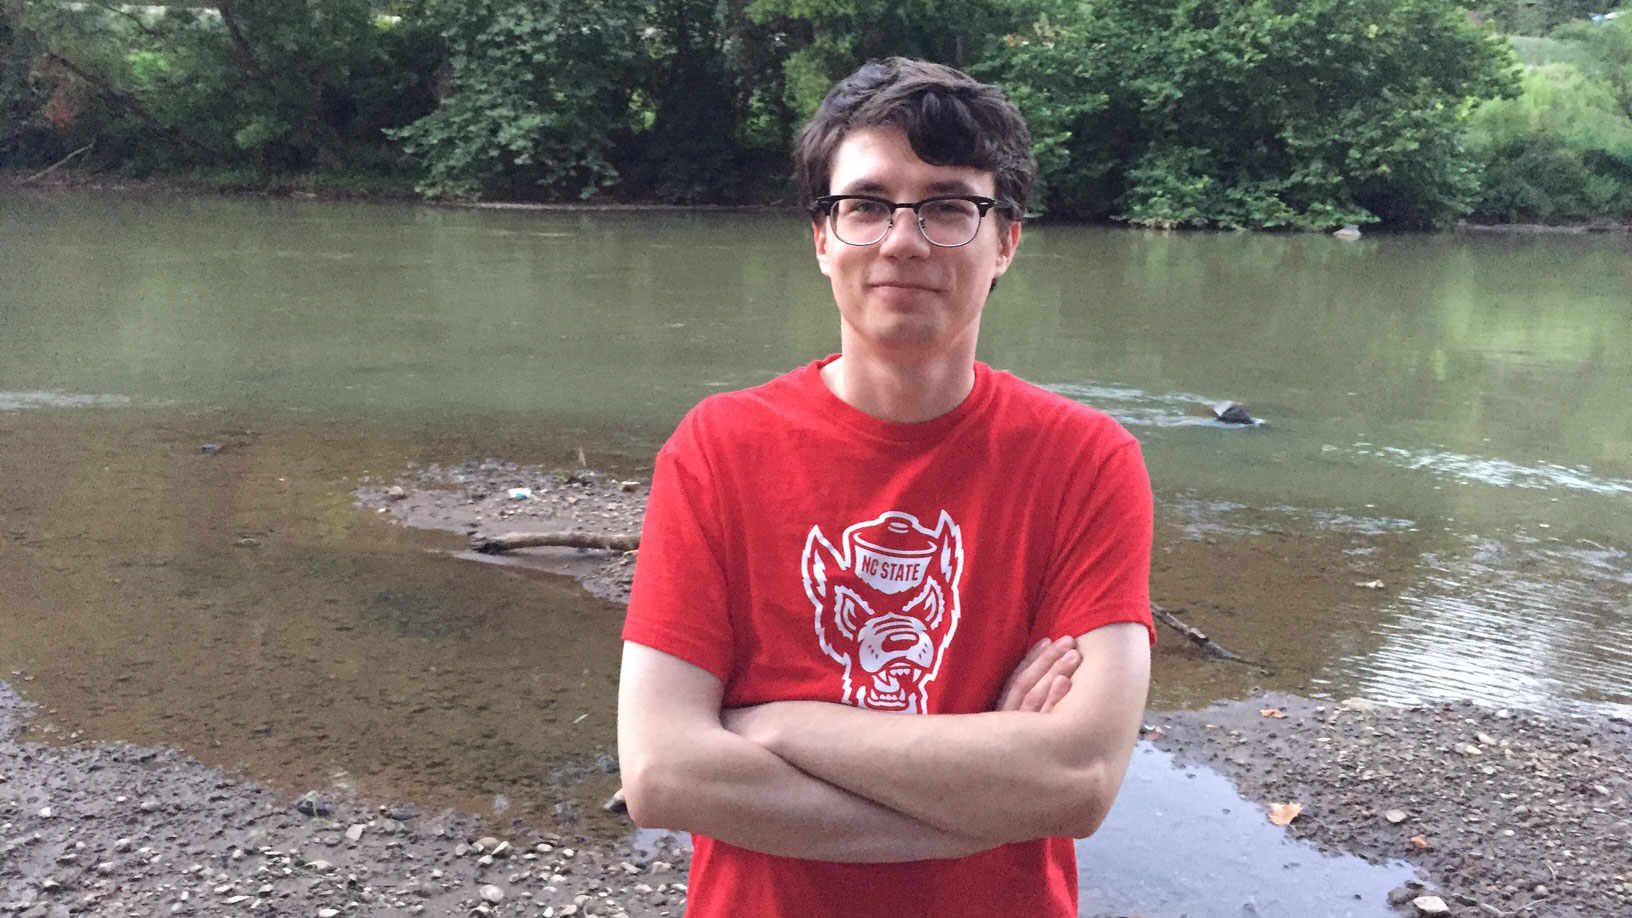 Jesse Young stands in front of a river